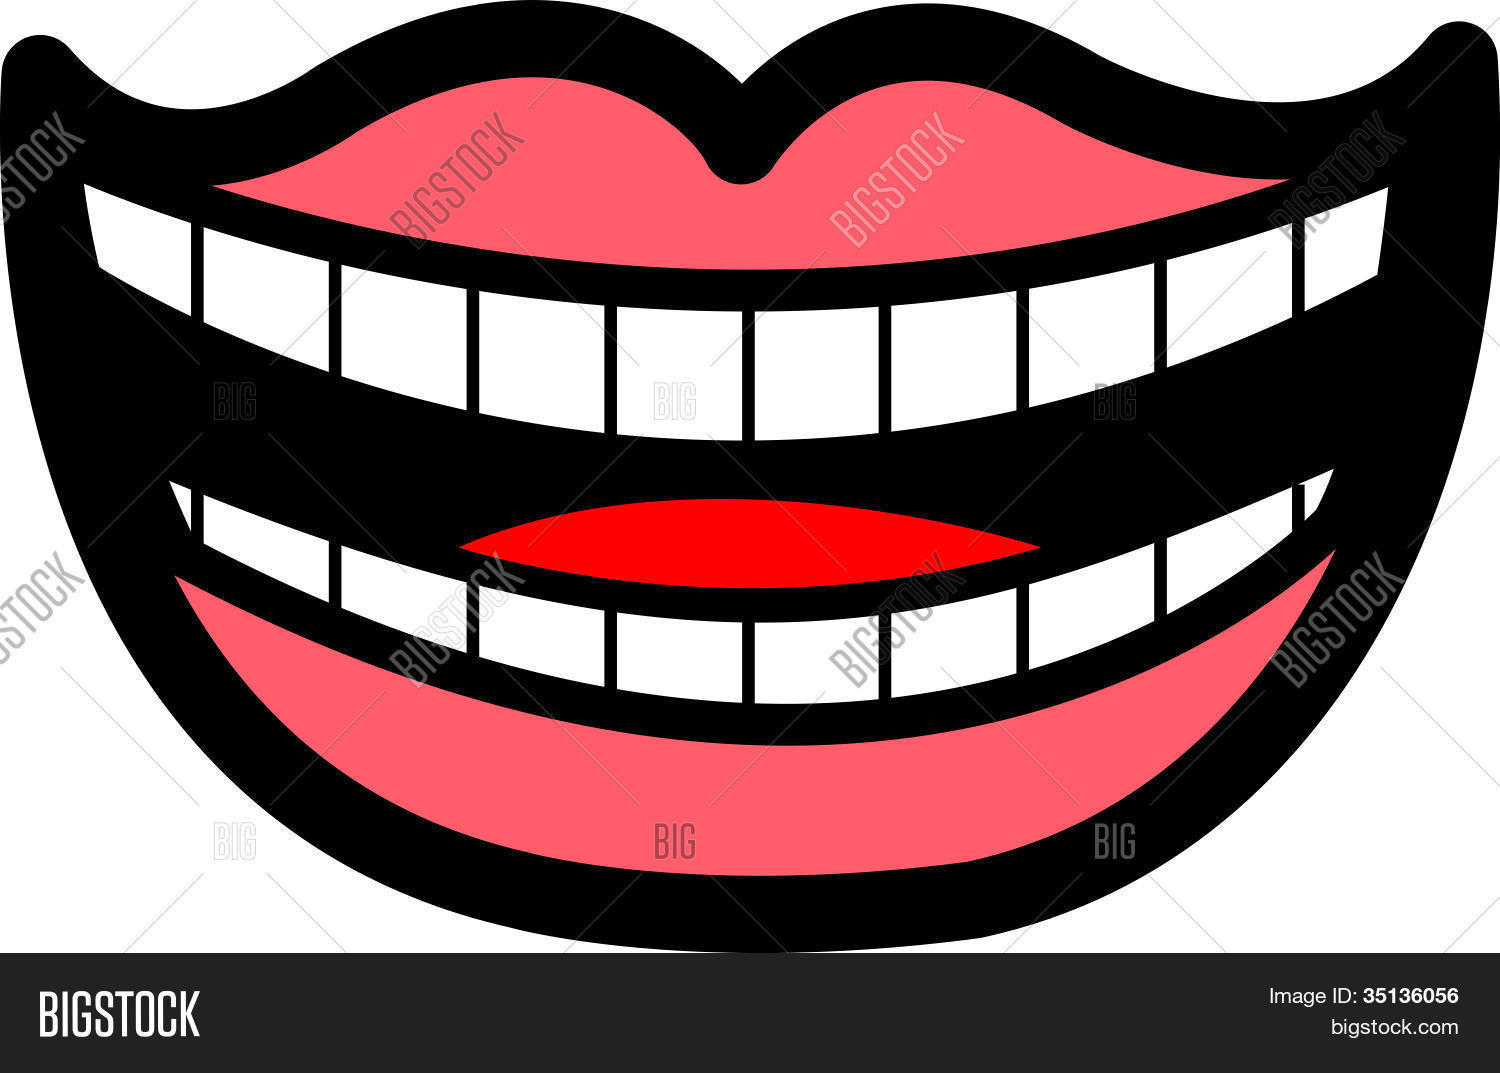 1500x1073 Teeth Smile Clipart, Explore Pictures